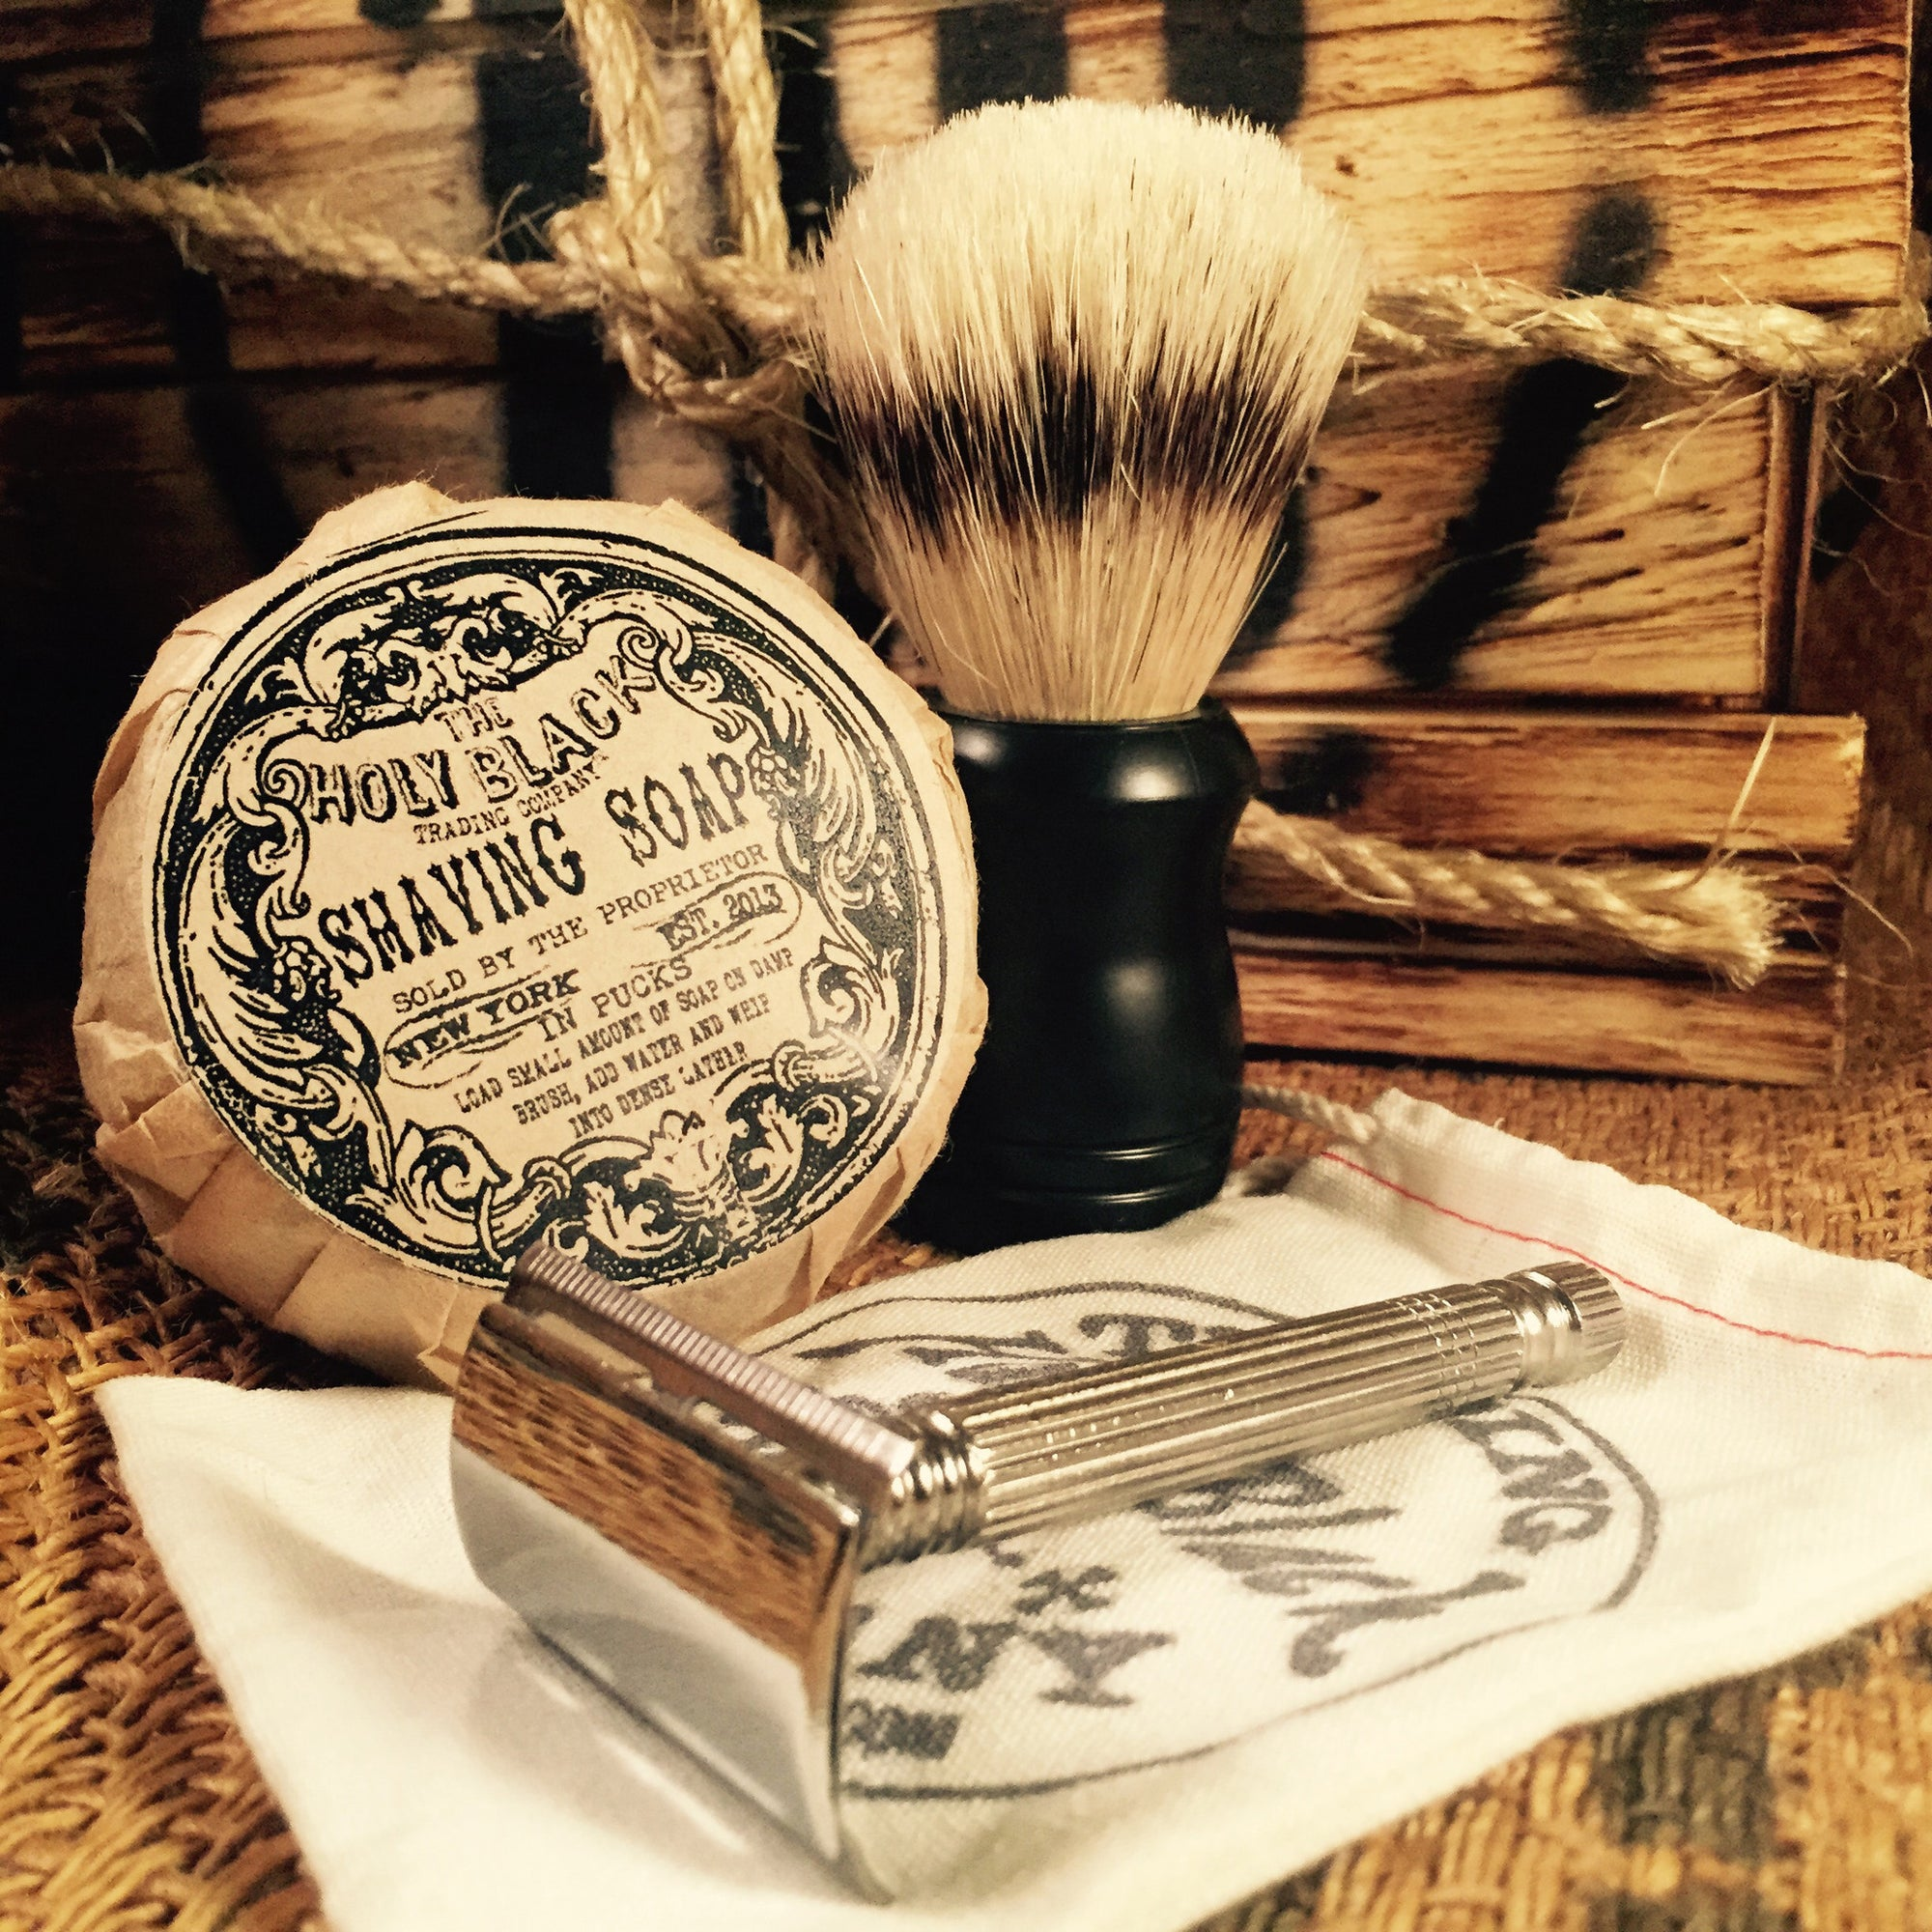 The Revival of the Art of Safety Razor Shaving